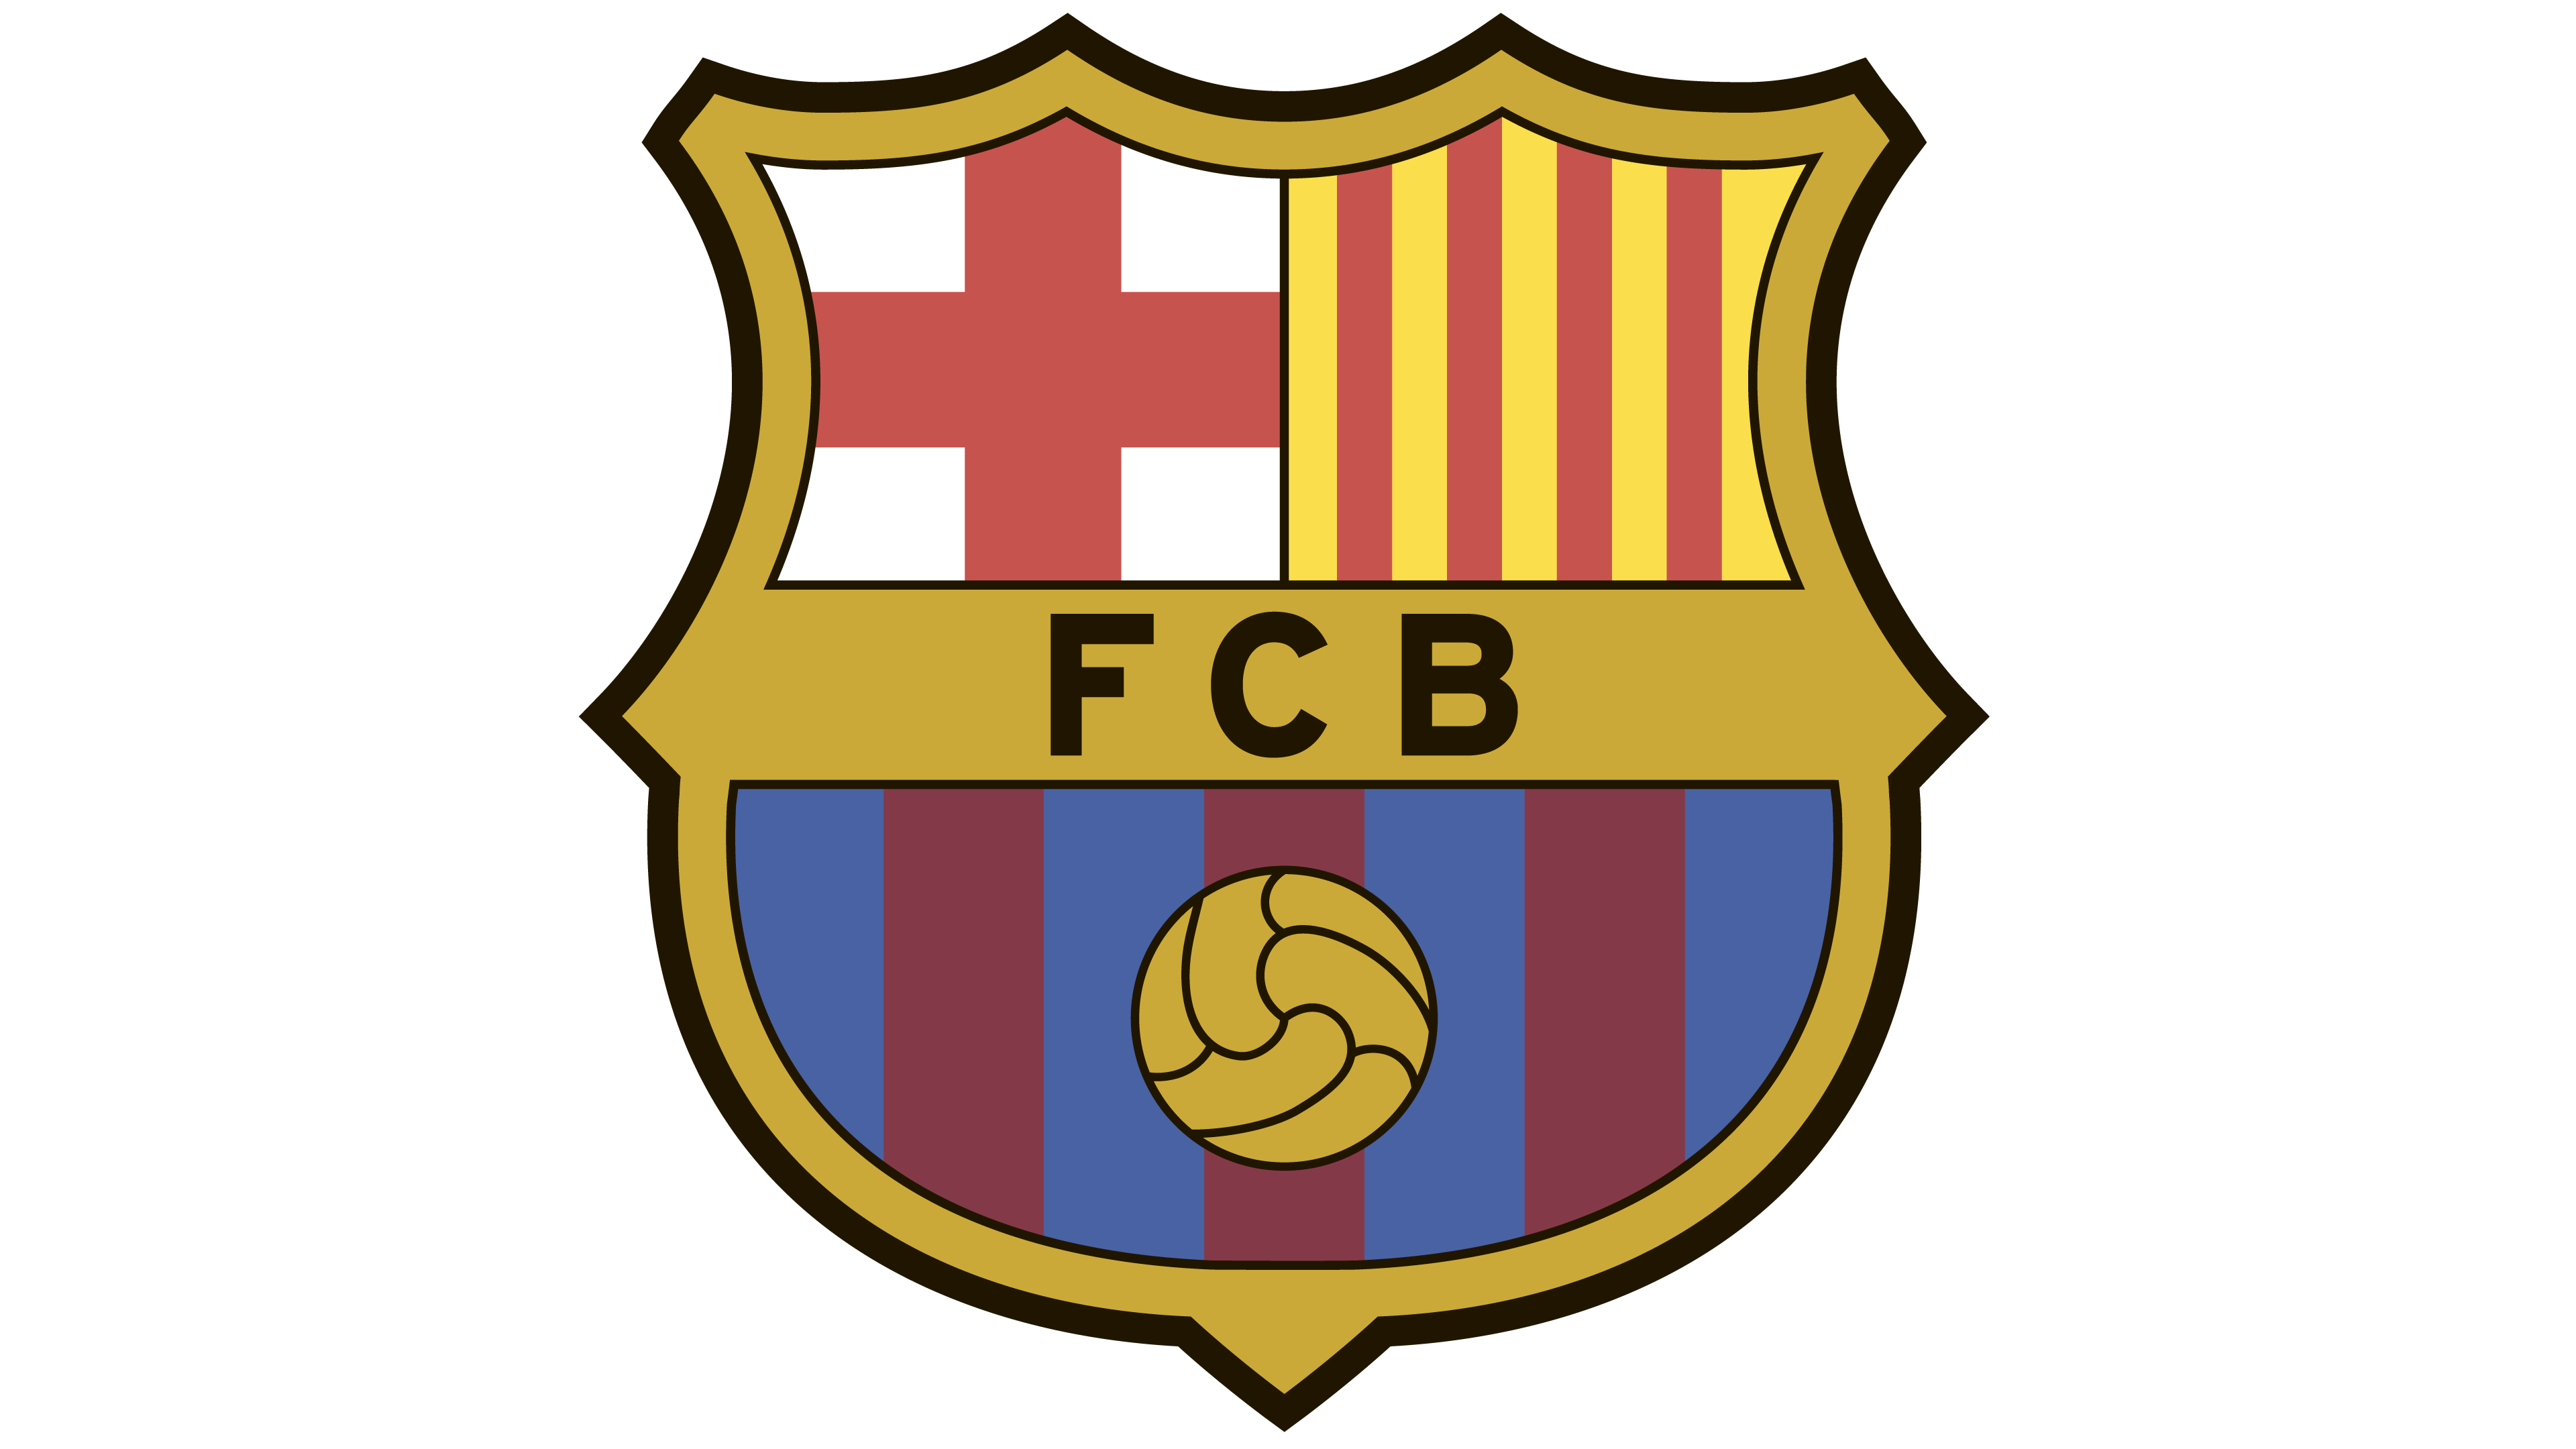 Barcelona logo clipart hd jpg transparent stock Barcelona logo - Interesting History of the Team Name and emblem jpg transparent stock